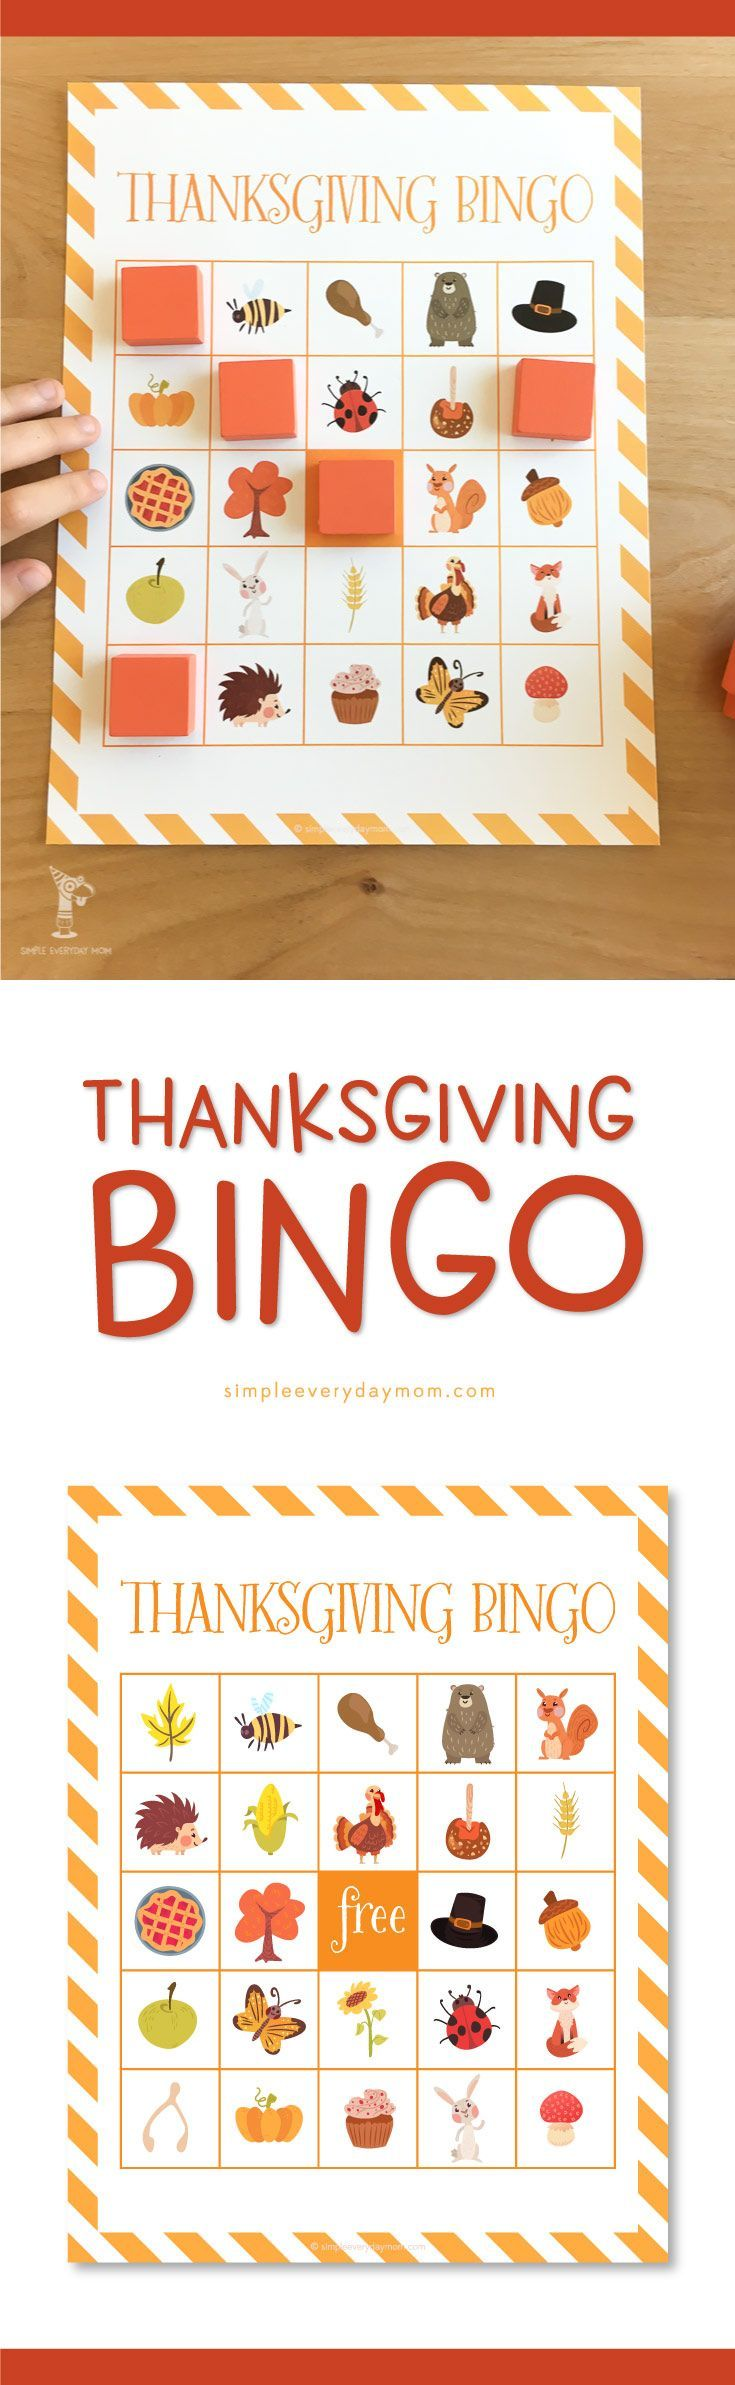 Thanksgiving Bingo printable for kids | Give your kids a fun activity to do while Thanksgiving dinner is being made. They'll love this easy to play Thanksgiving bingo